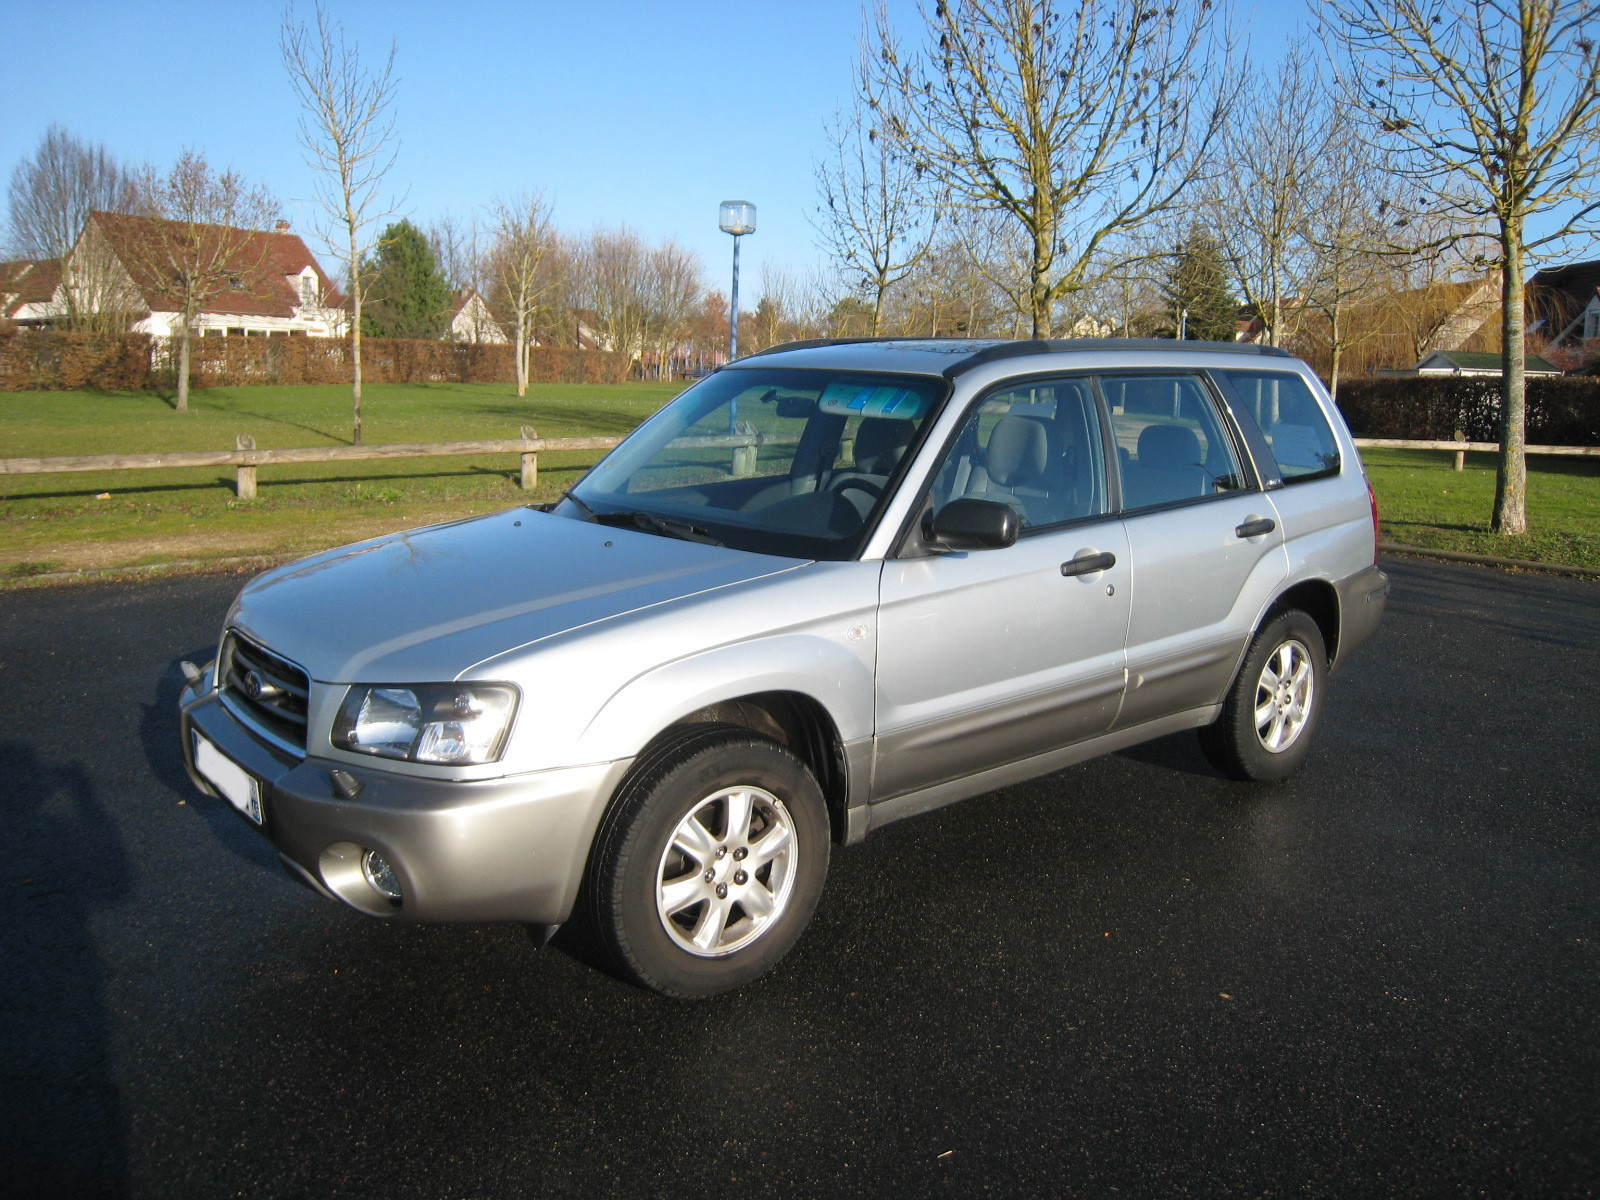 Forester-01a